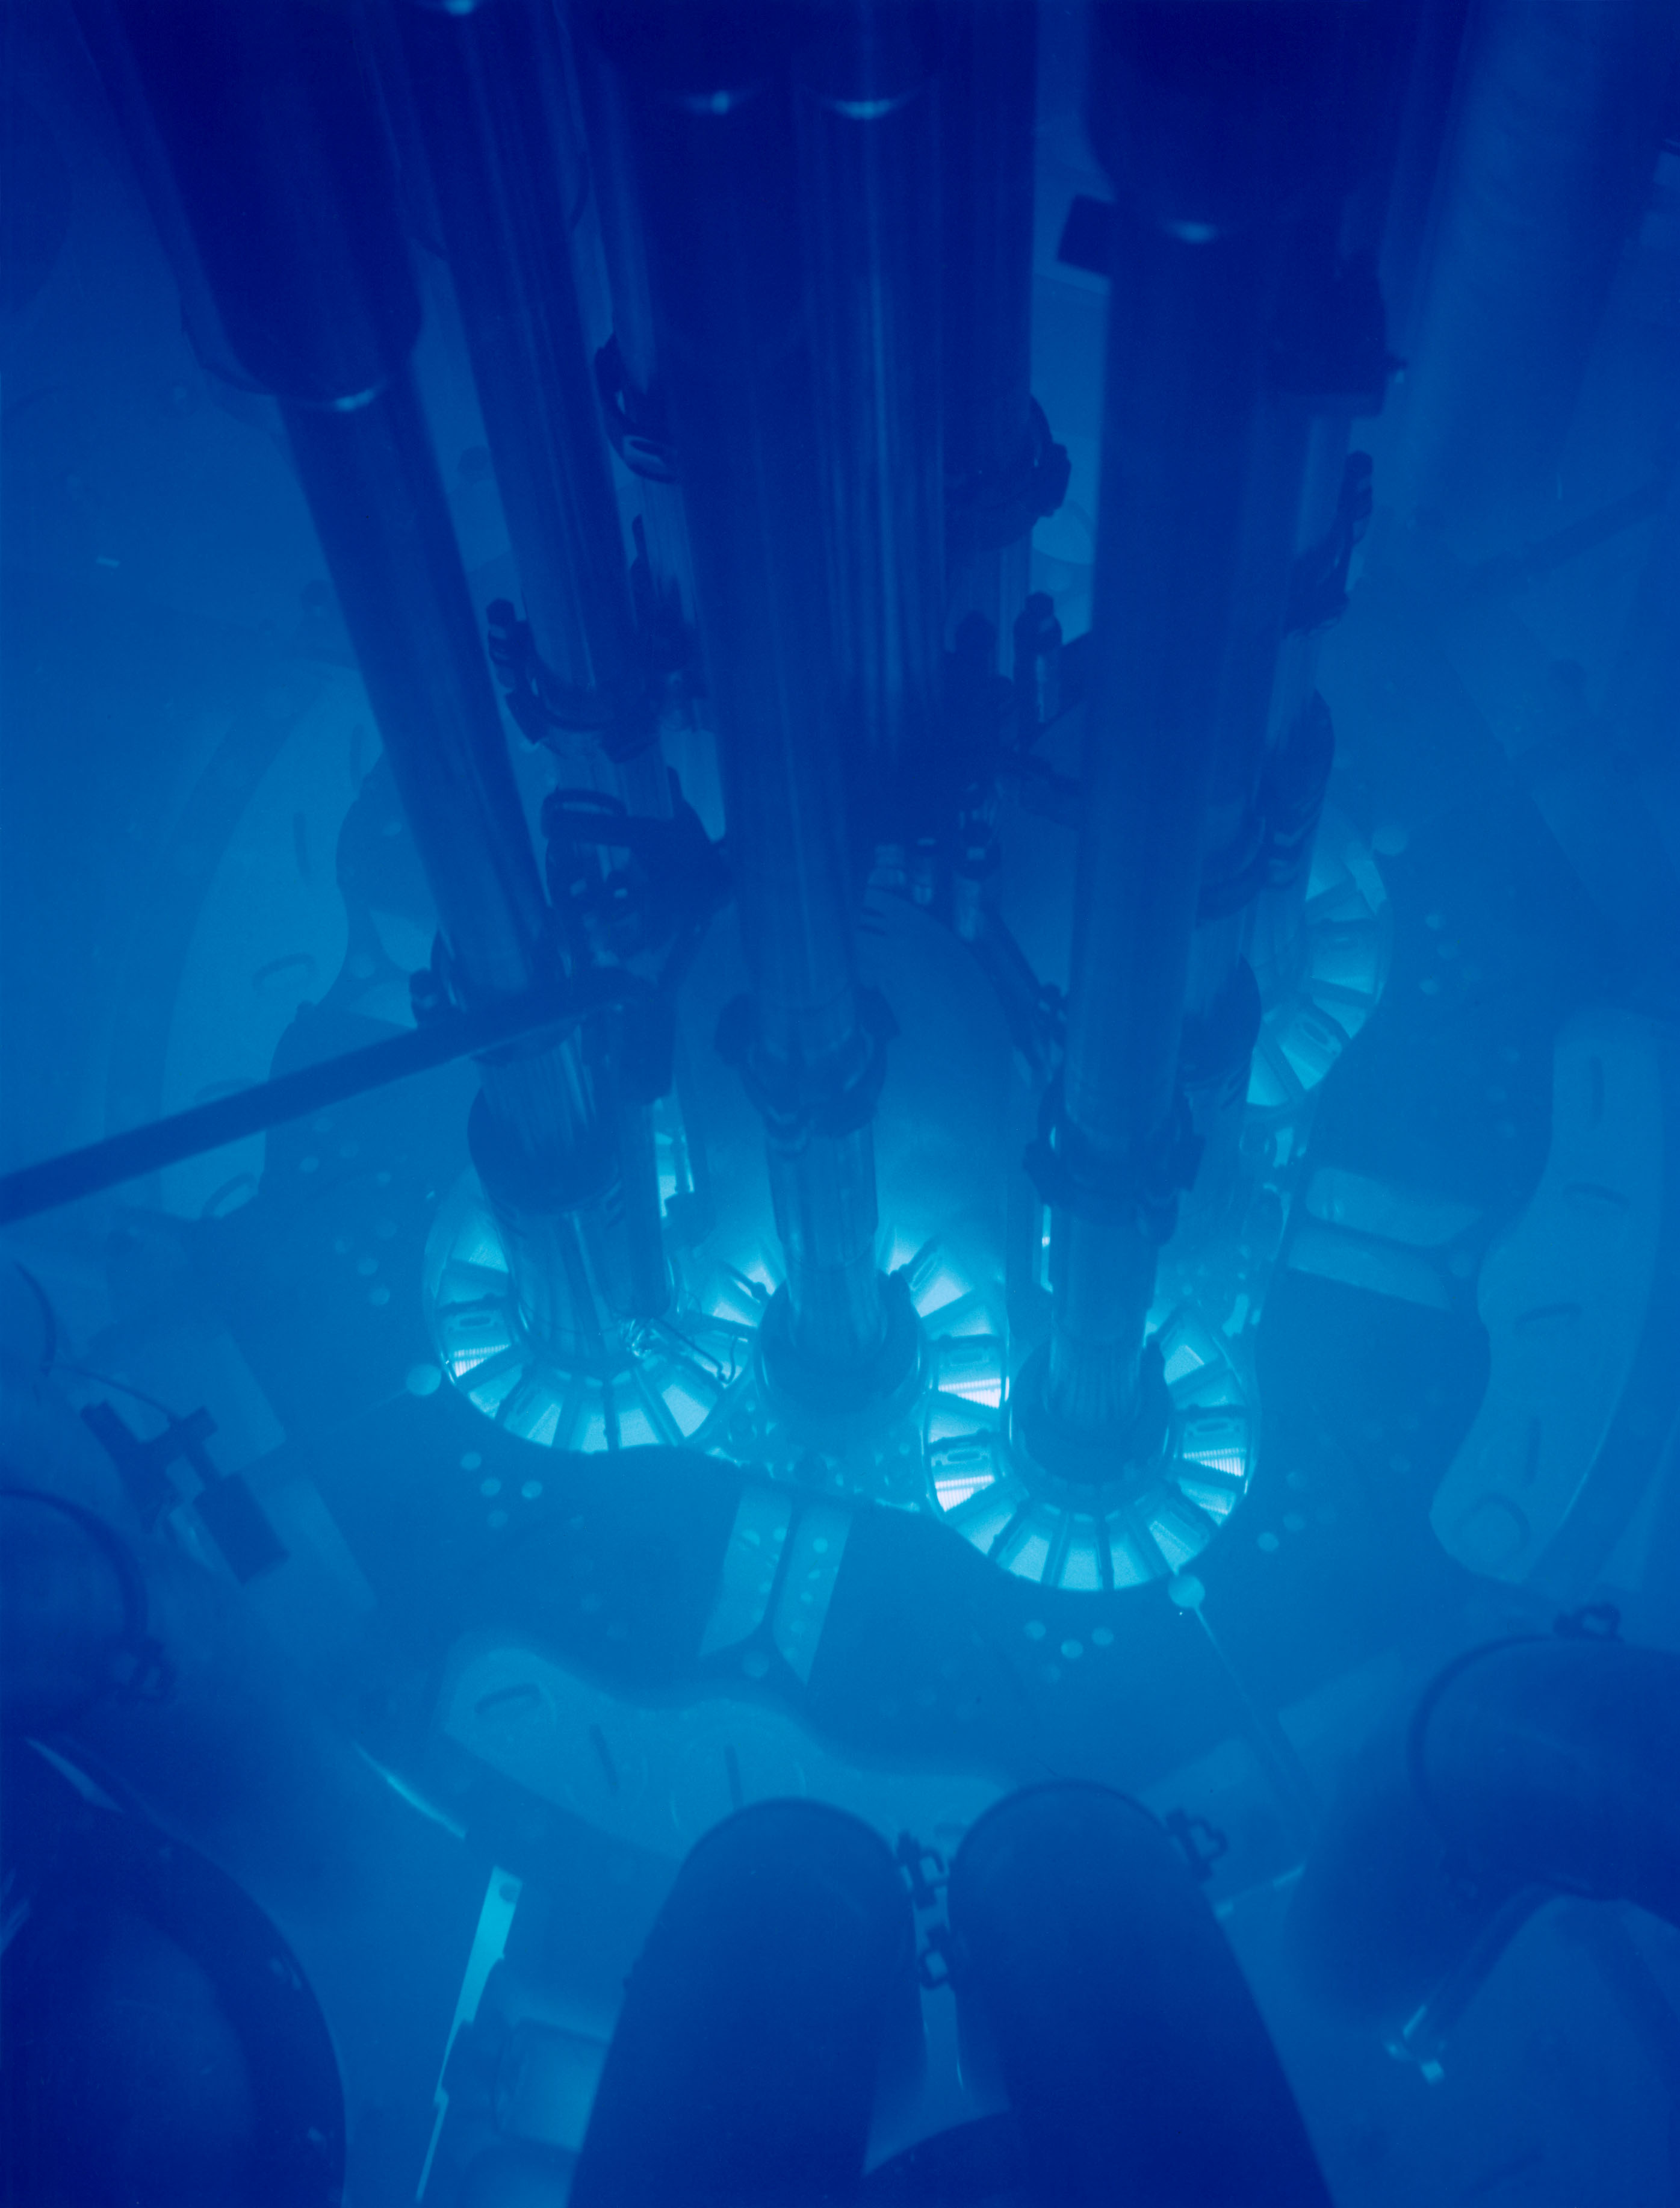 Advanced Test Reactor core, Idaho National Laboratory, submerged in water and glowing even bluer from Cherenkov Radiation. [2,791 × 3,668]